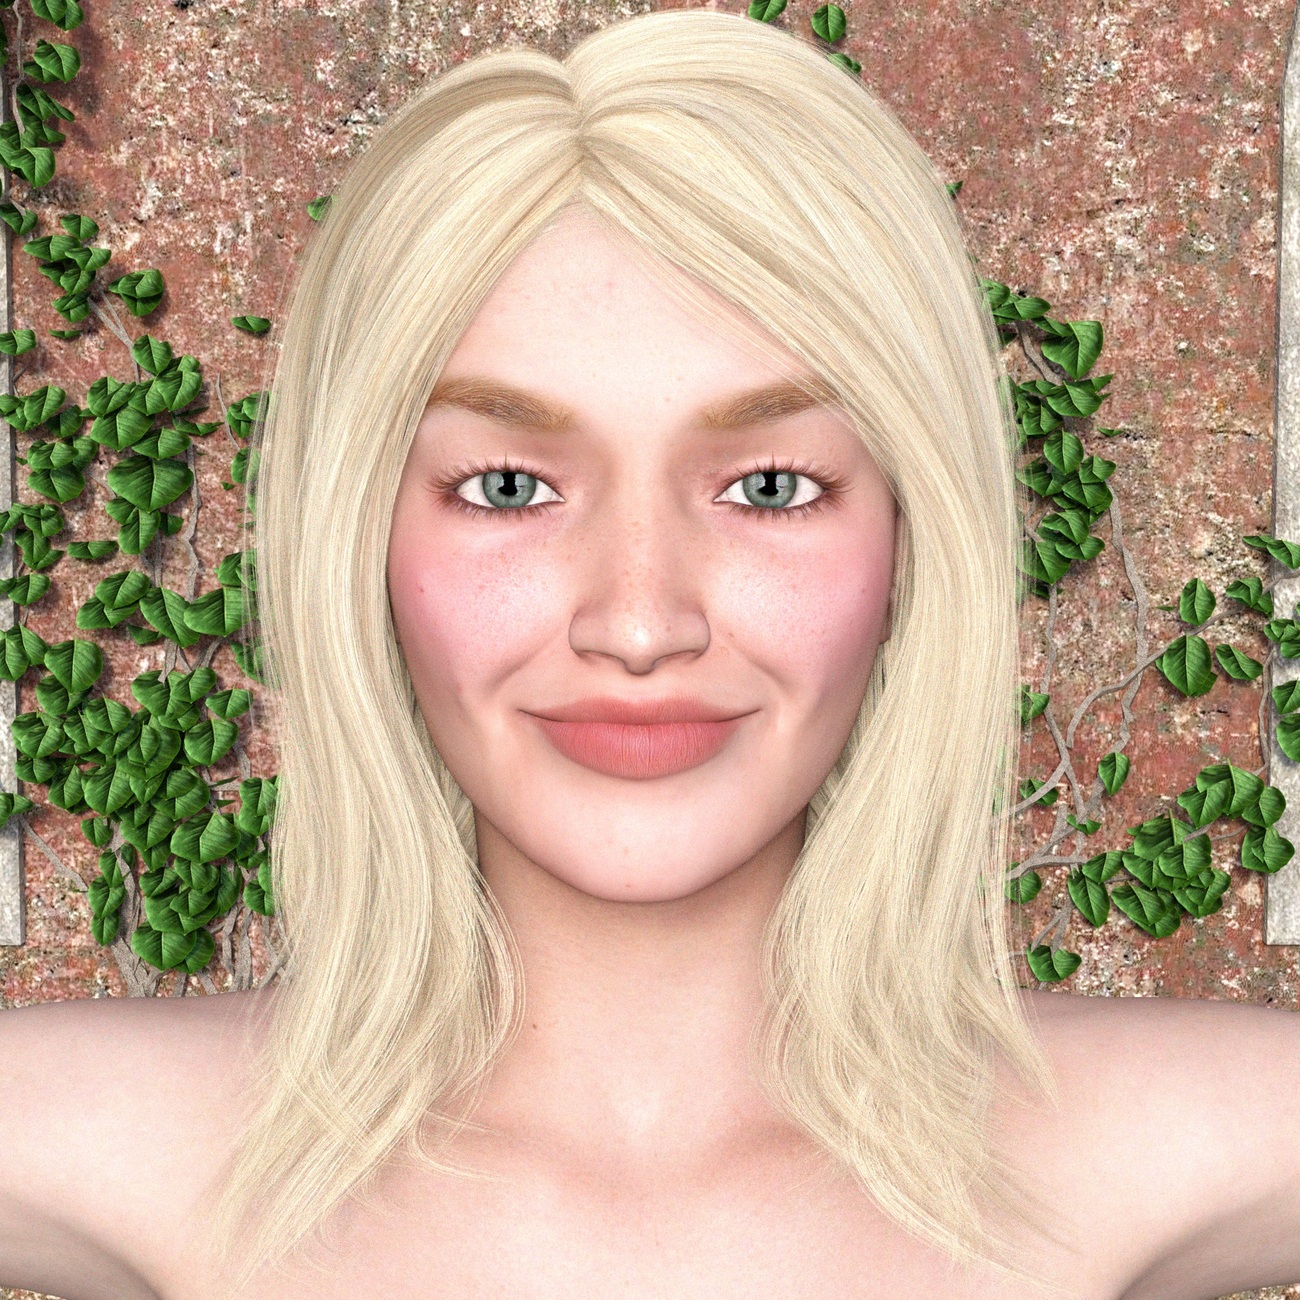 Tamsin's Smile by RenderInfer